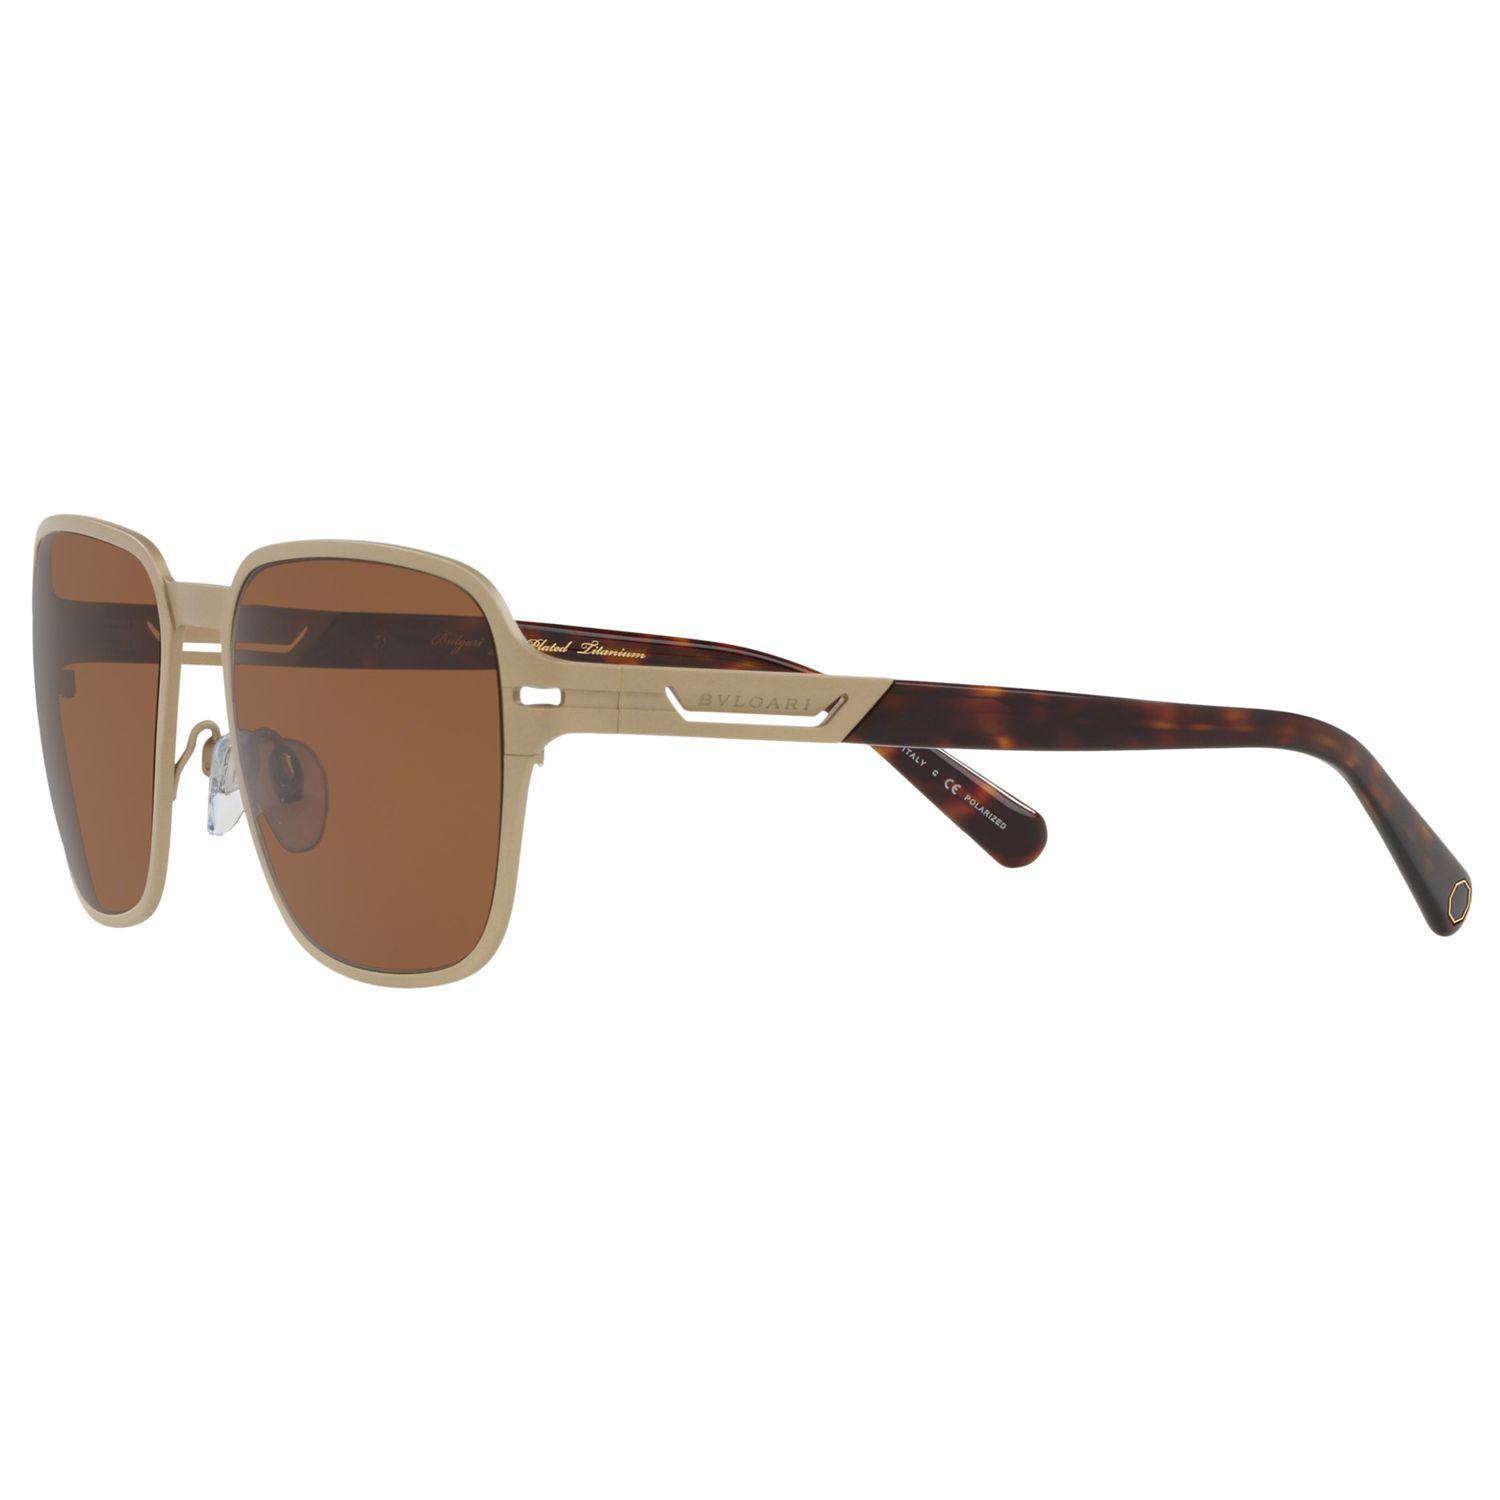 a03ca5dba3 BVLGARI - Brown Bv5046tk Men s Polarised Titanium Square Sunglasses for Men  - Lyst. View fullscreen